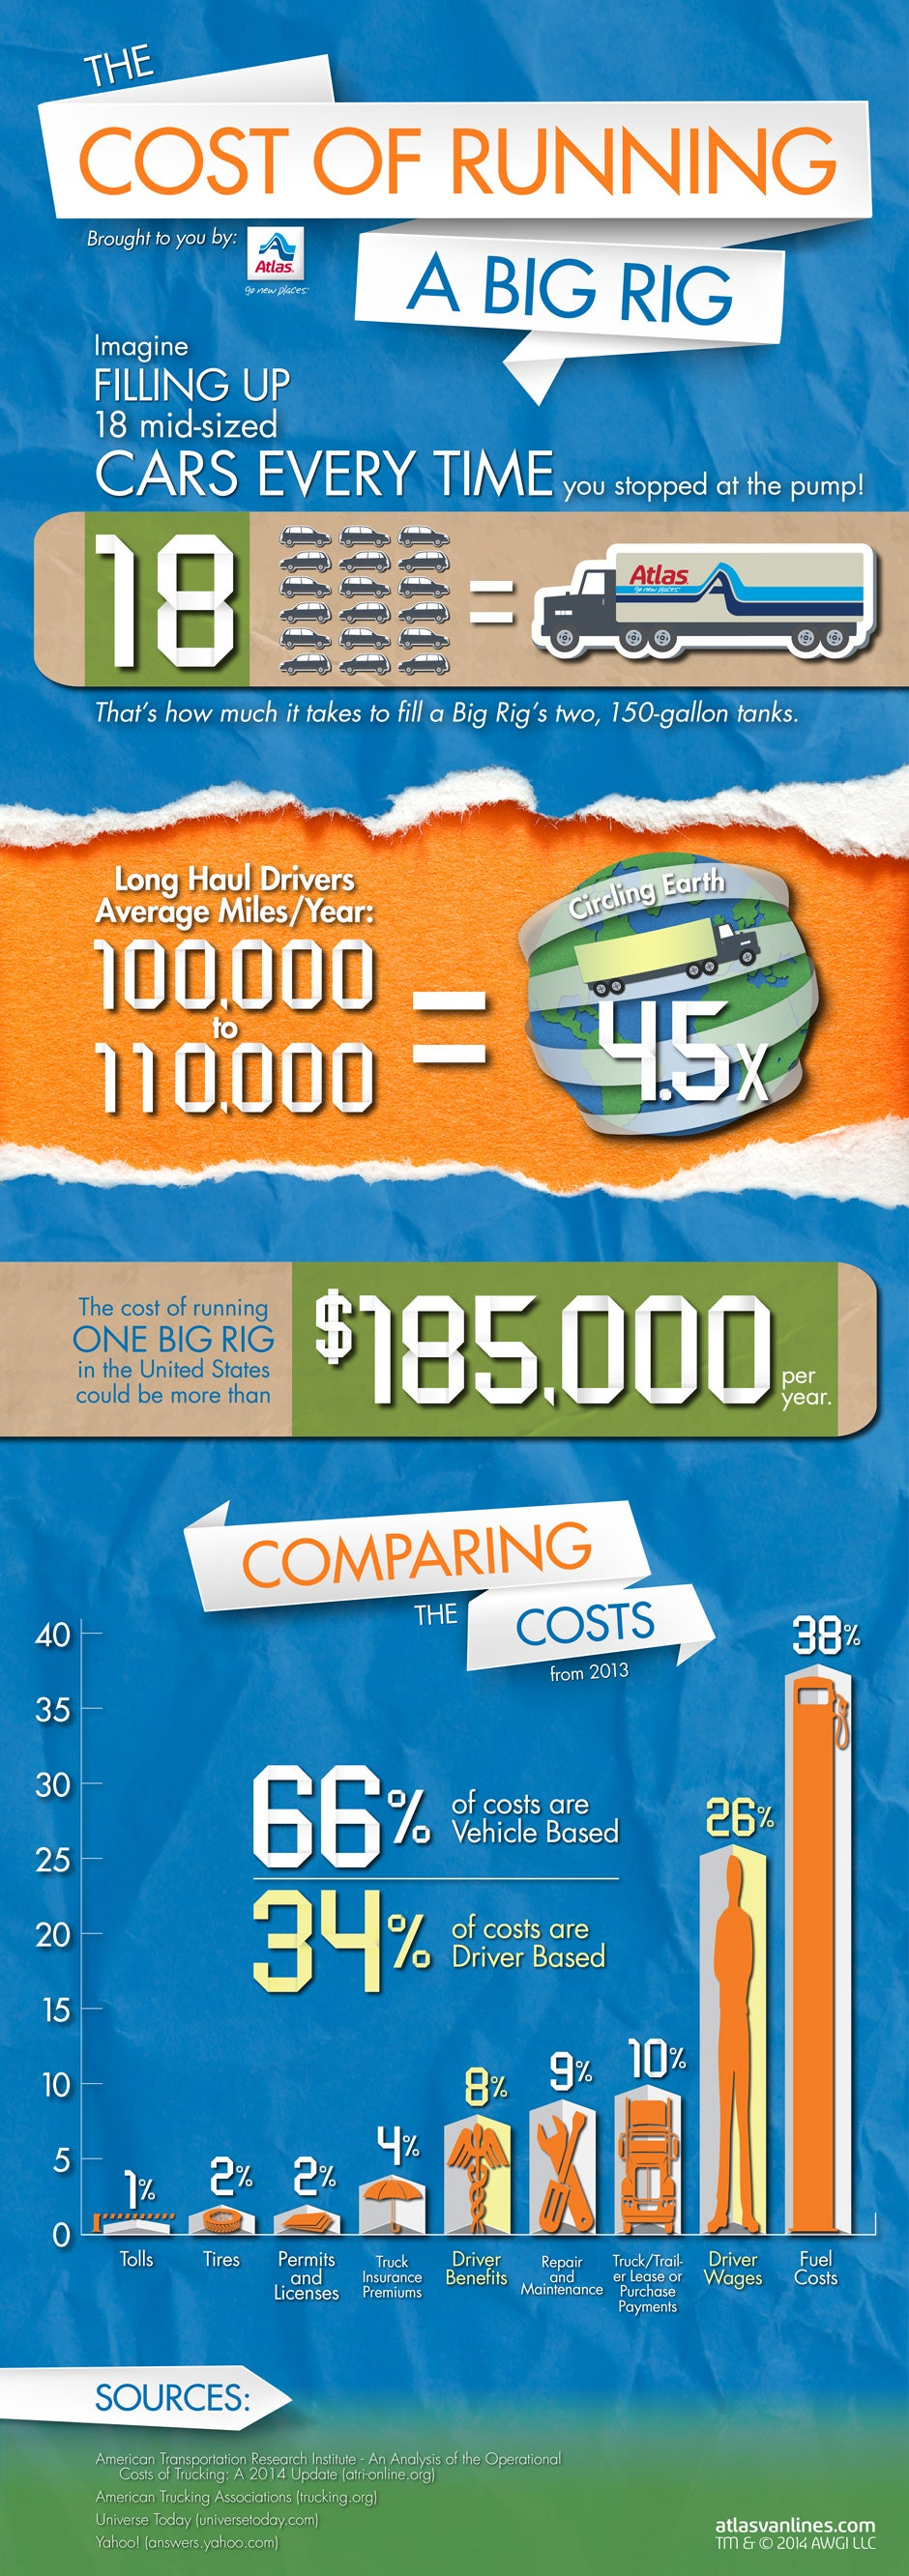 Big rig costs infographic